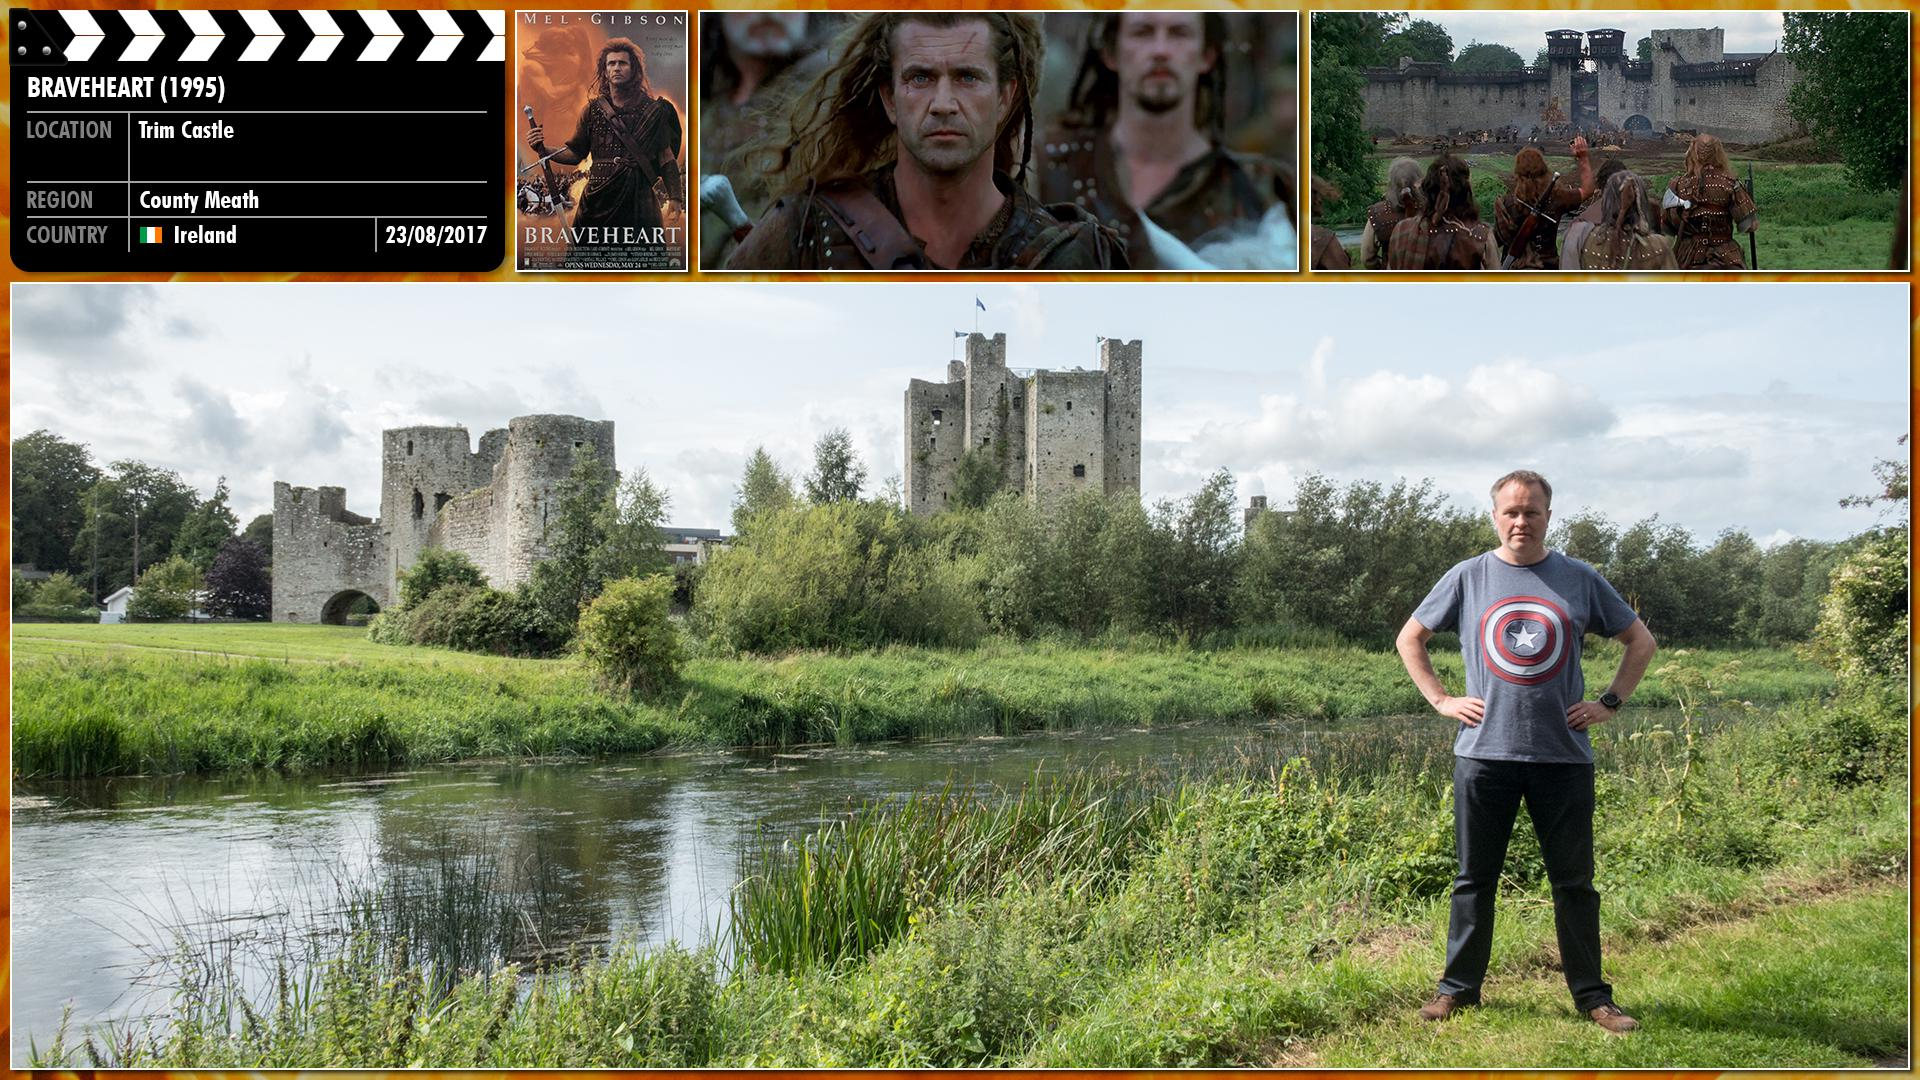 Filming location photo for Braveheart (1995) 4 of 9